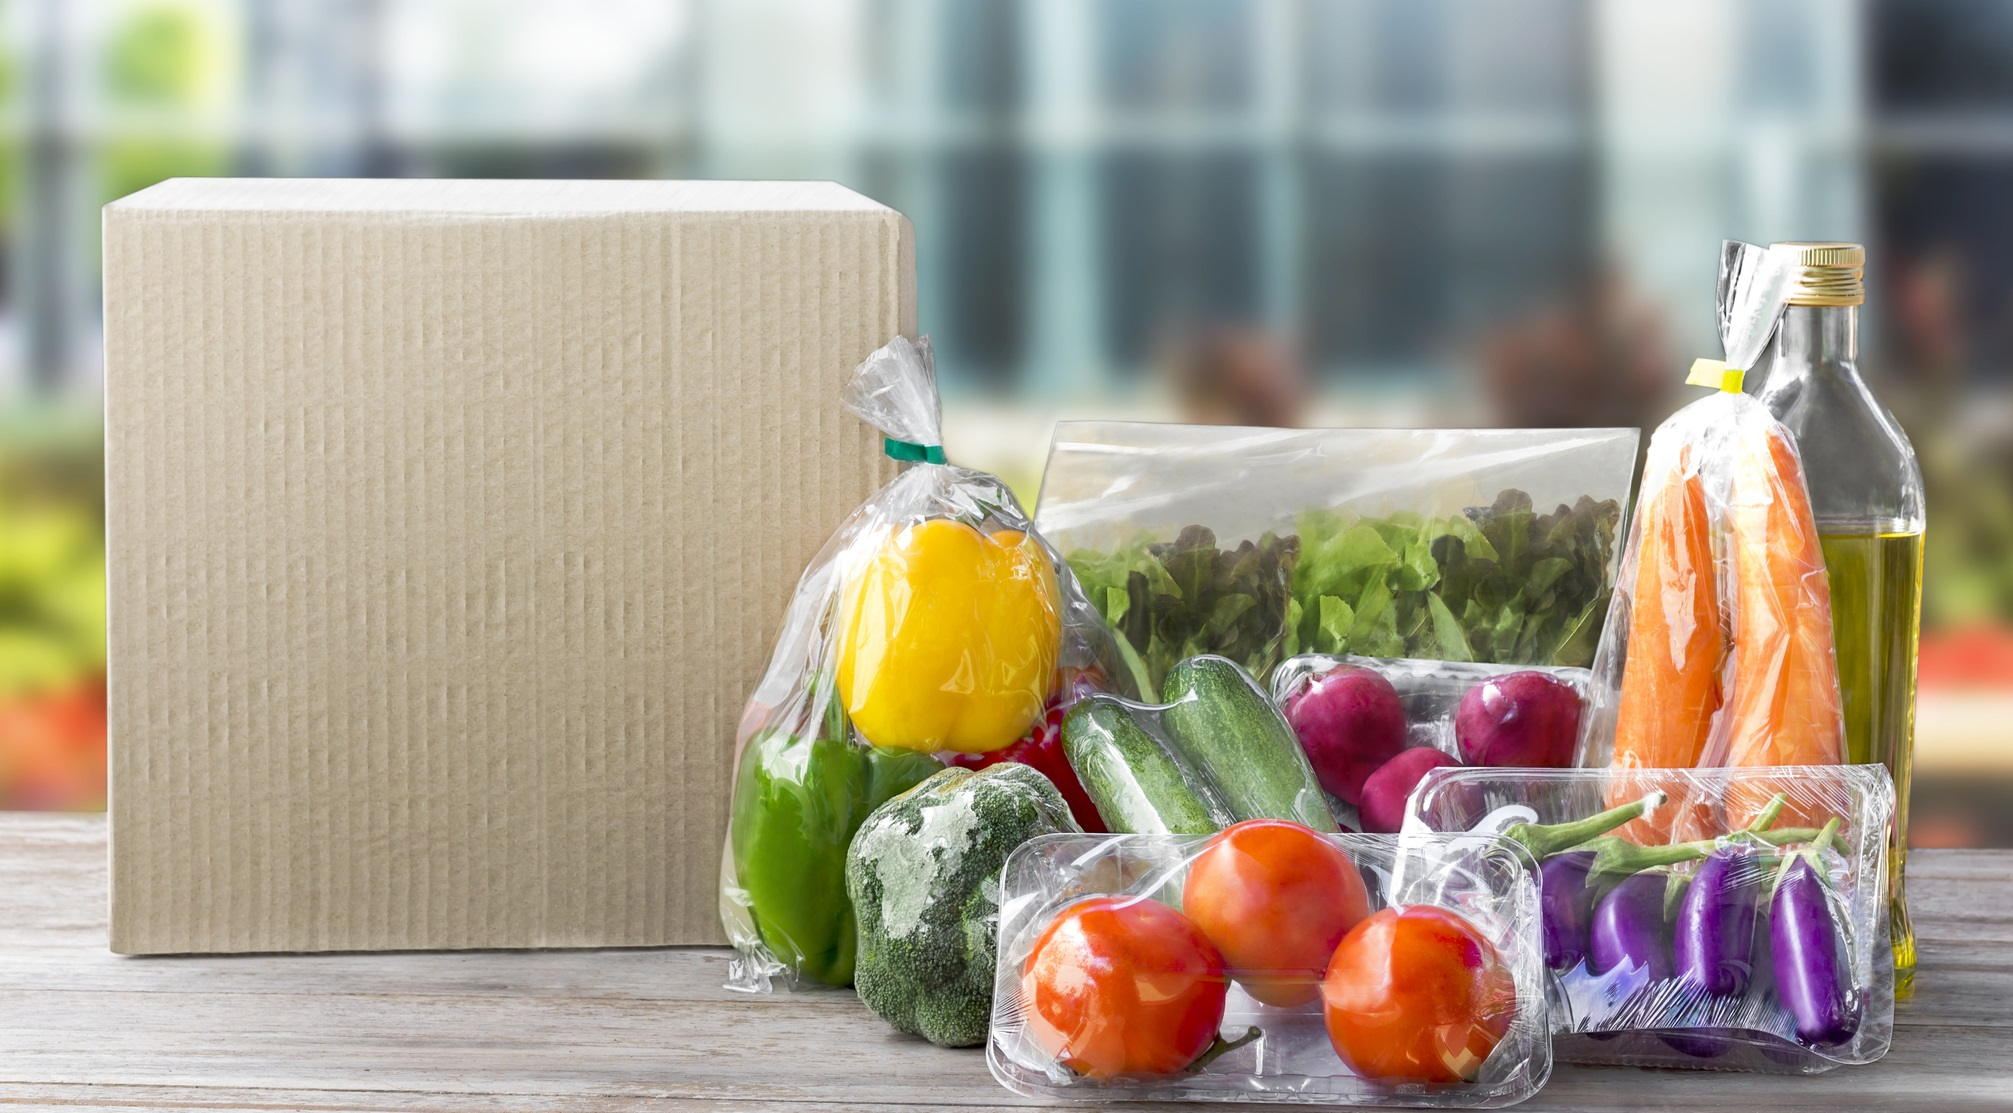 Fresh Food Delivered Weekly Vegetable delivery at home online order for cooking and packages box with blank for text. on wooden table background. ID 100319858 © Arisa Thepbanchornchai | Dreamstime.com